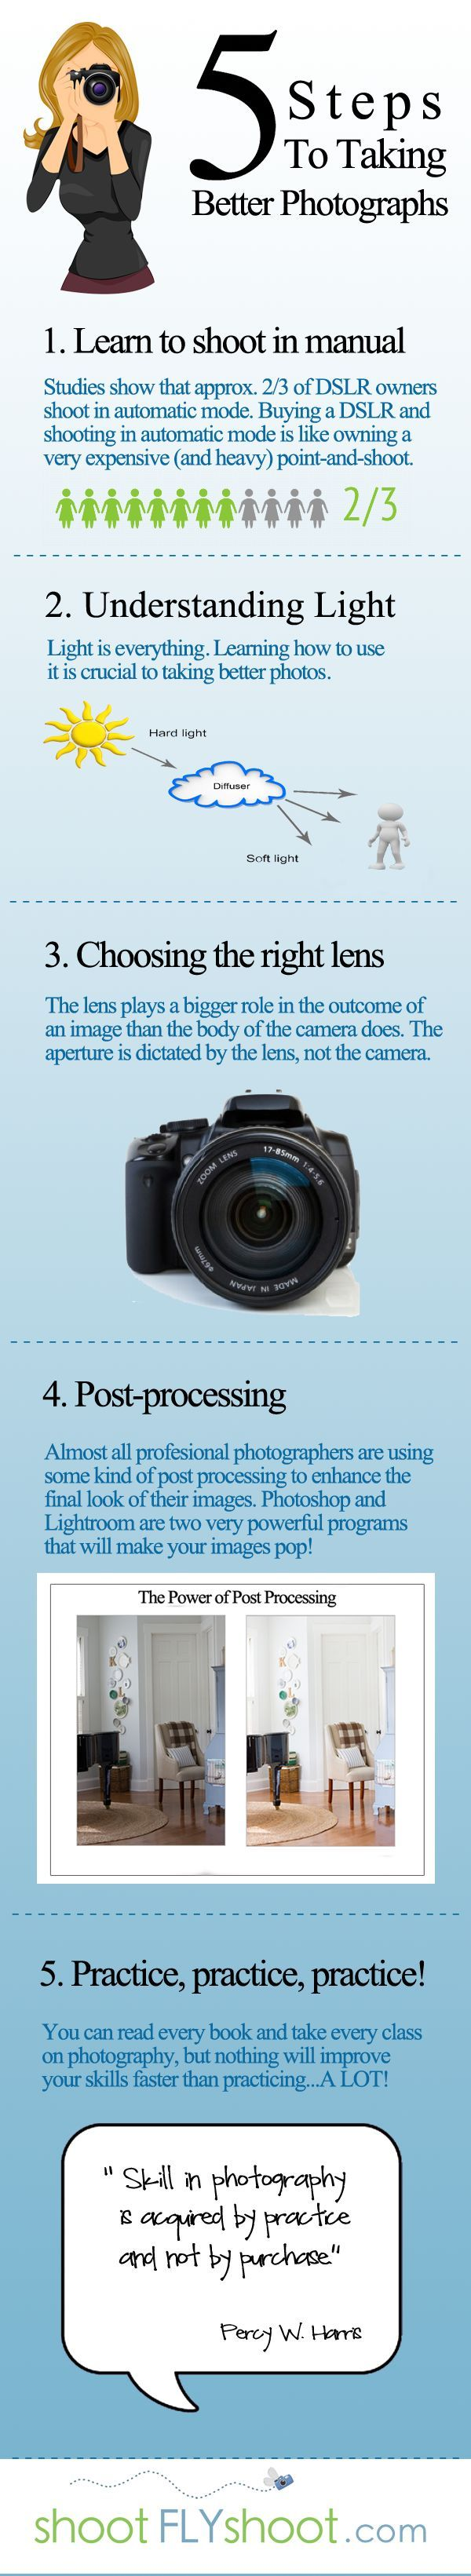 Photography Tips | 5 Steps to Taking Better Photographs: for when you are taking photos of your amazing DIY work :)